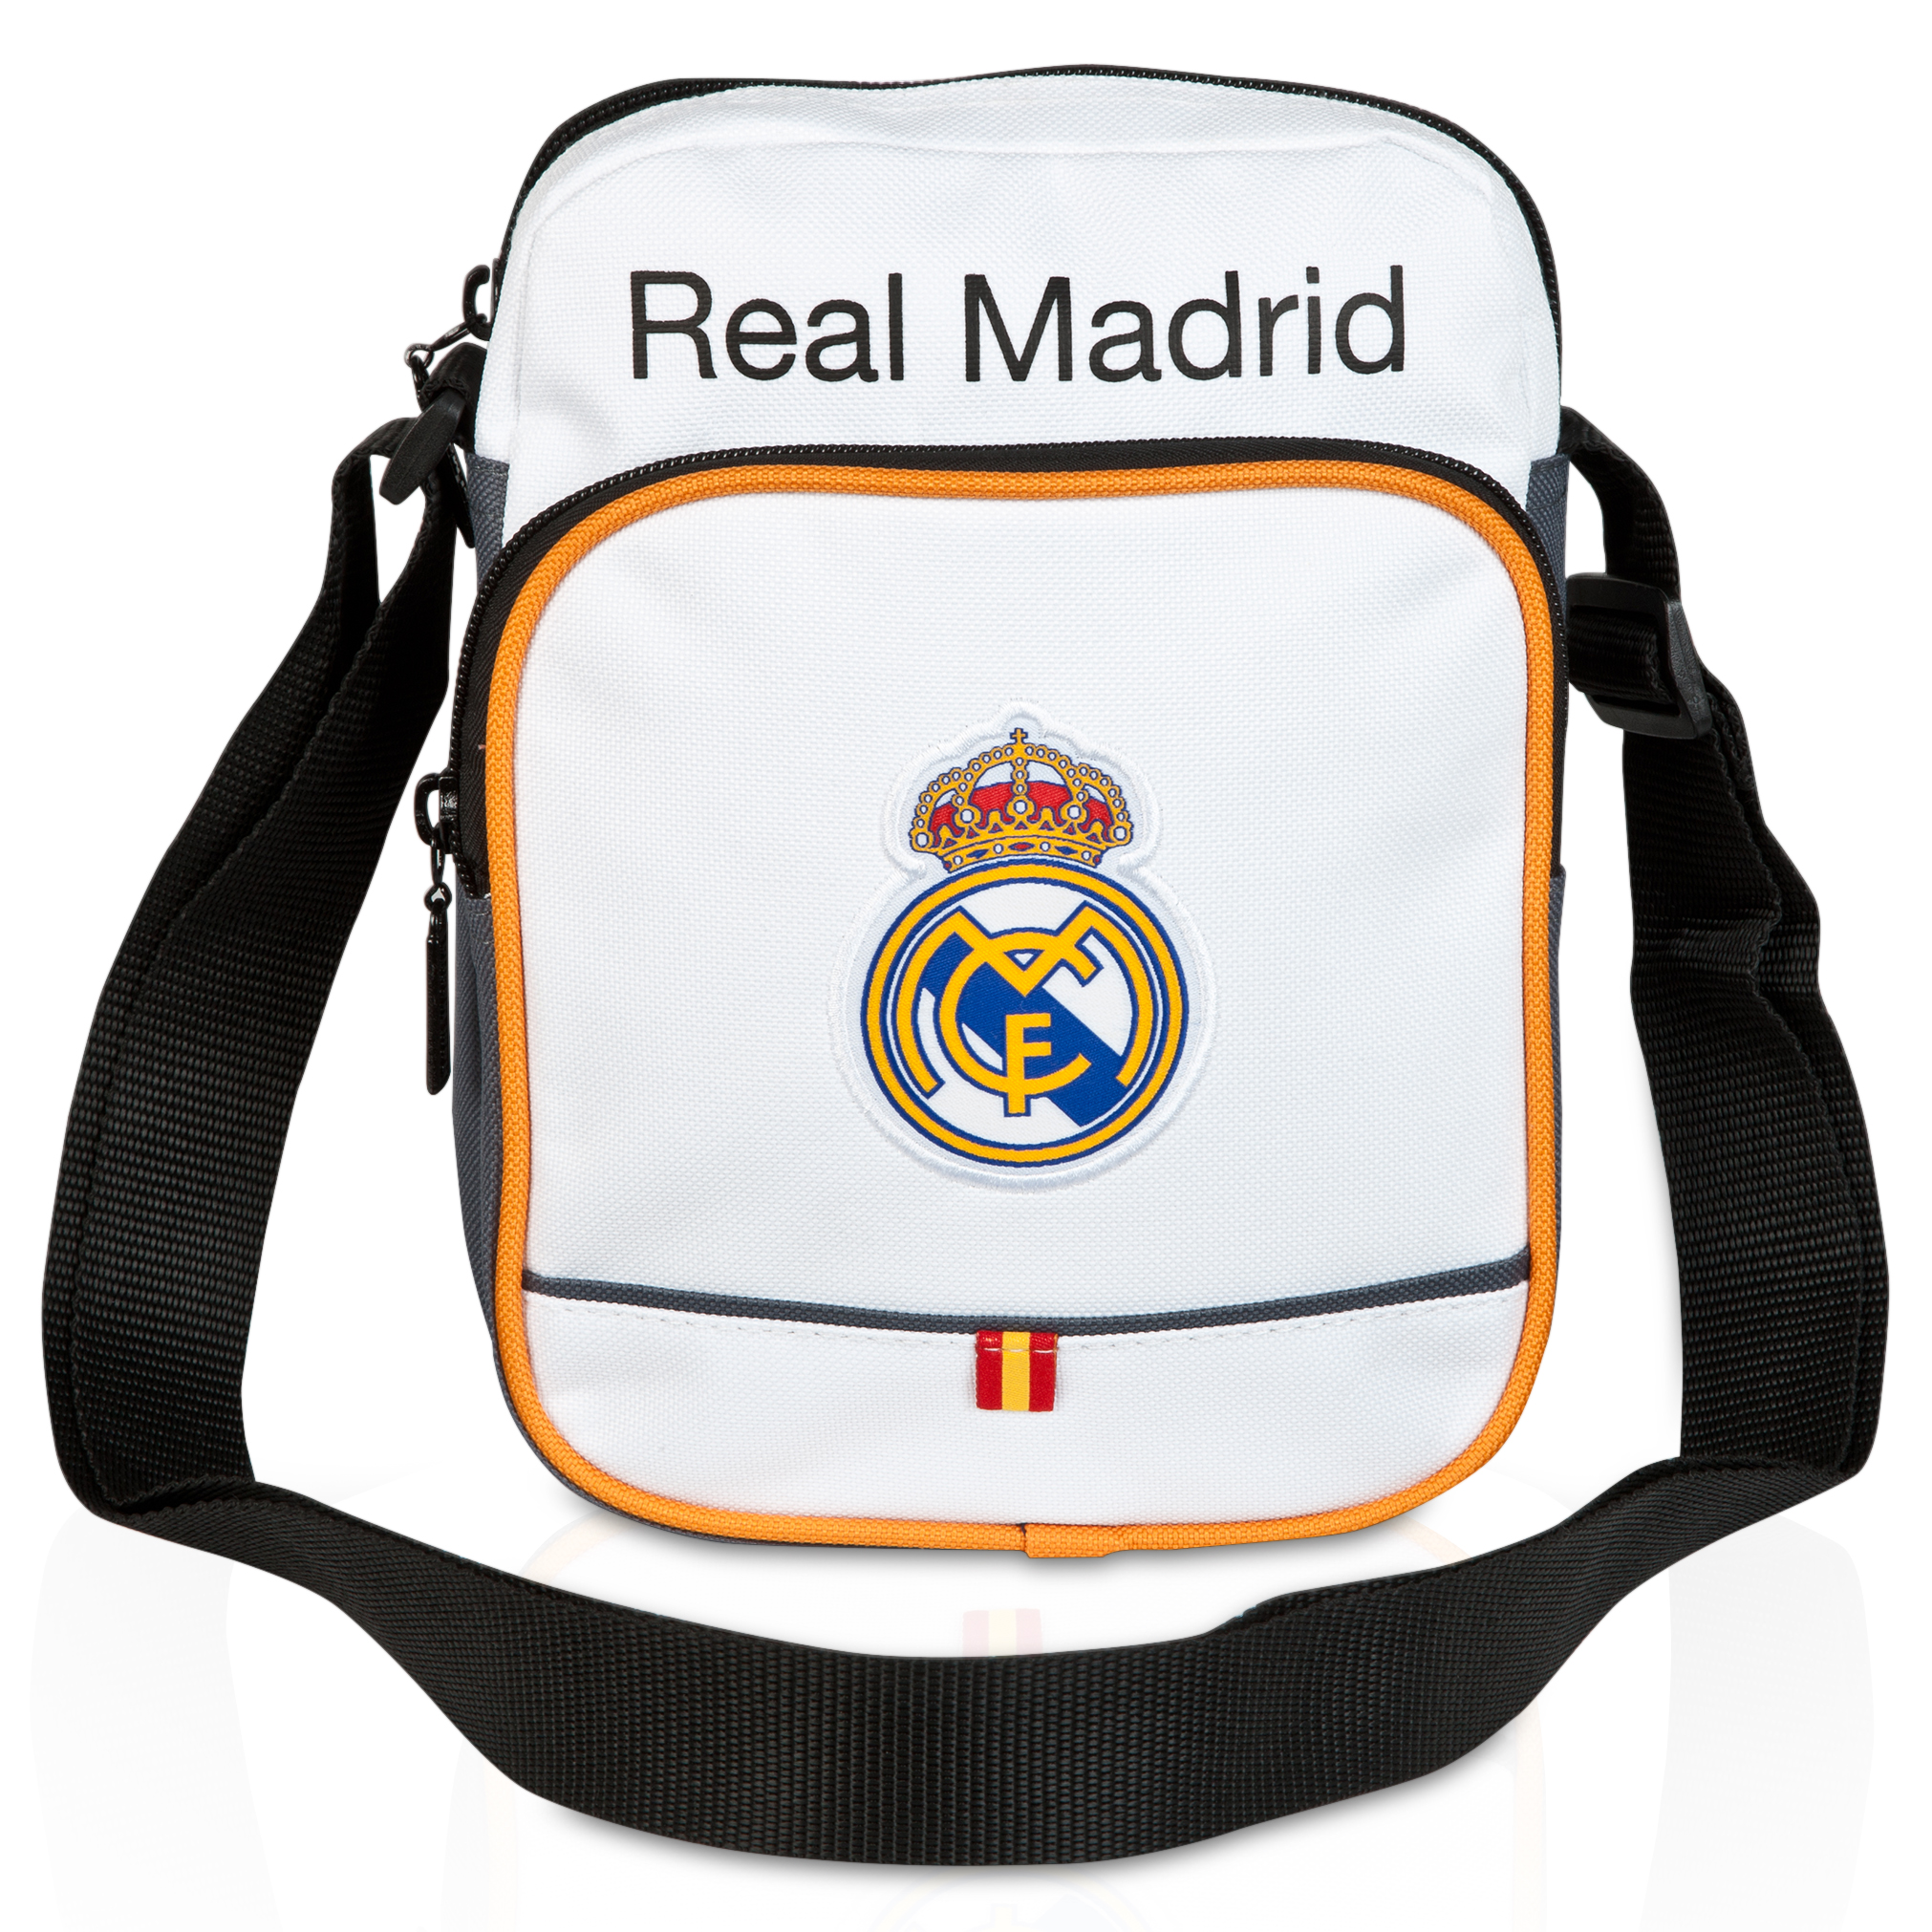 Real Madrid Mini Shoulder Bag - 160 x 220 x 60mm